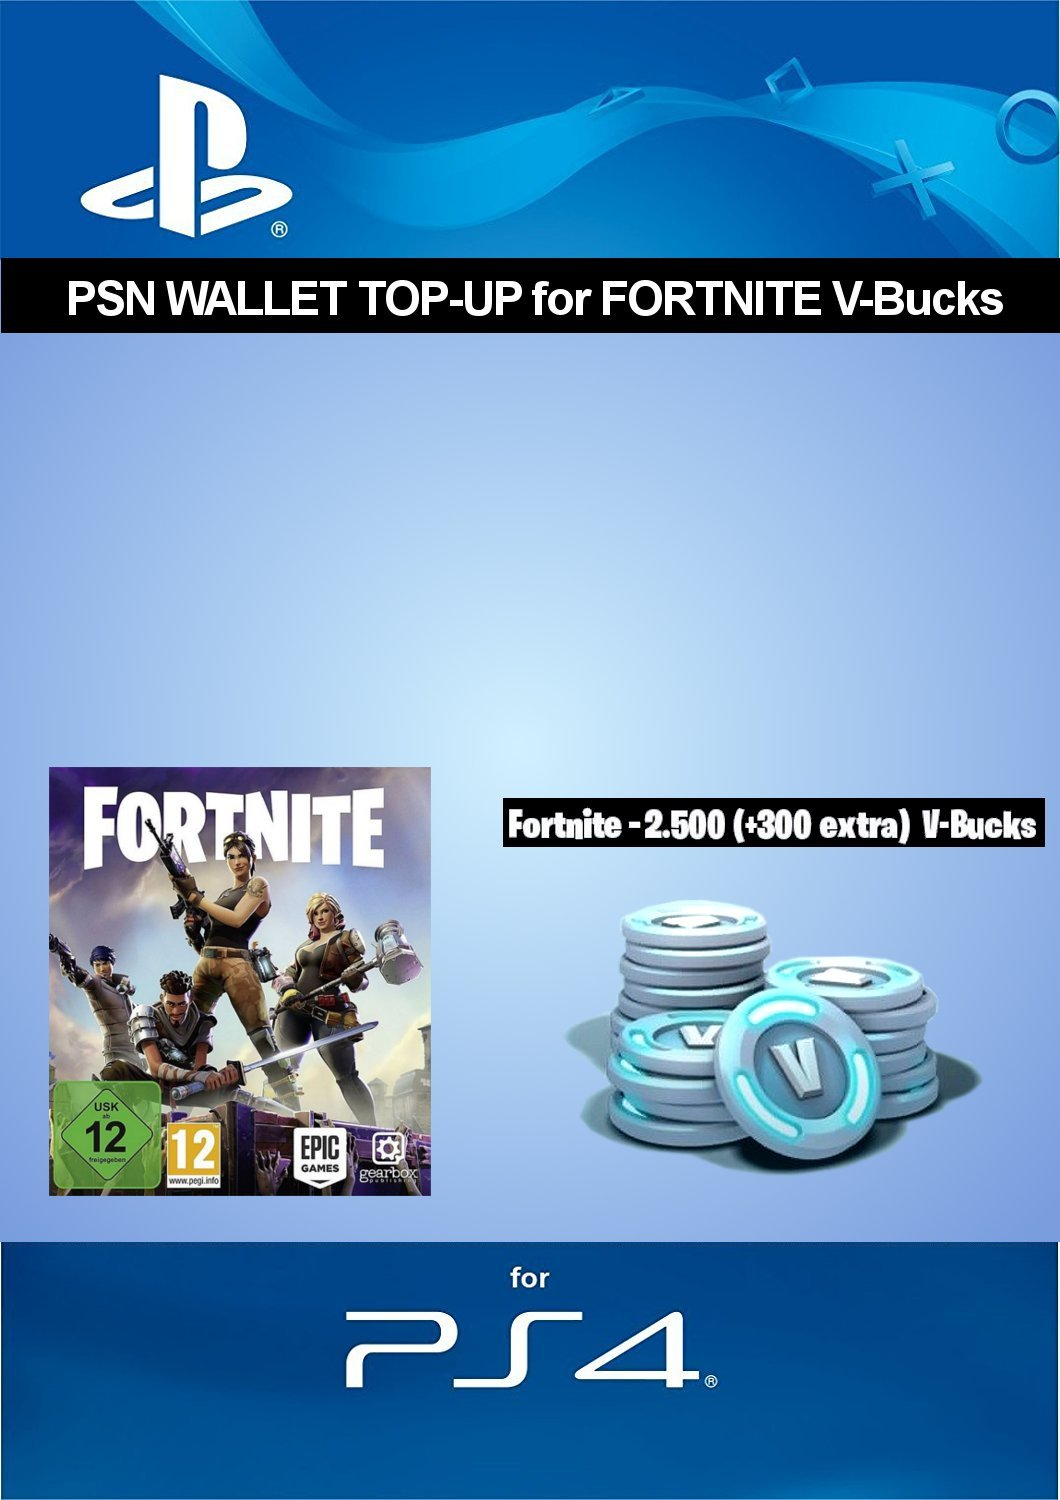 psn credit for fortnite 2 500 v bucks 300 extra v bucks 2 800 v bucks dlc ps4 download code uk account amazon co uk pc video games - how much does vbucks cost in fortnite